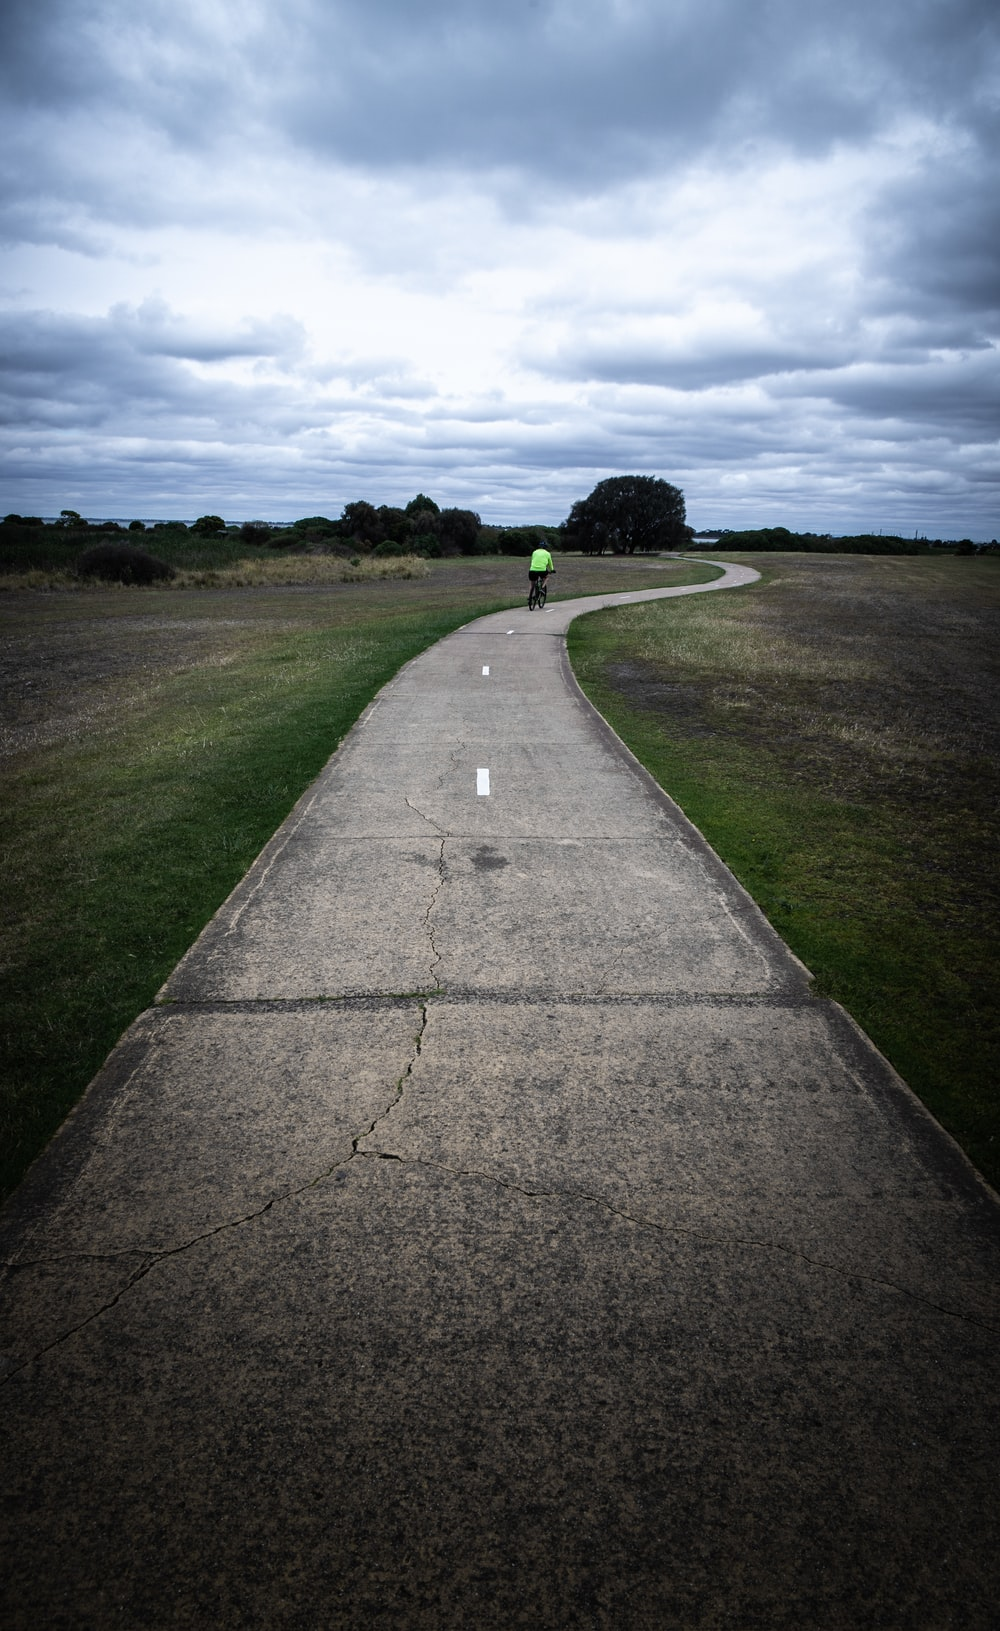 gray concrete road between green grass field under gray clouds during daytime